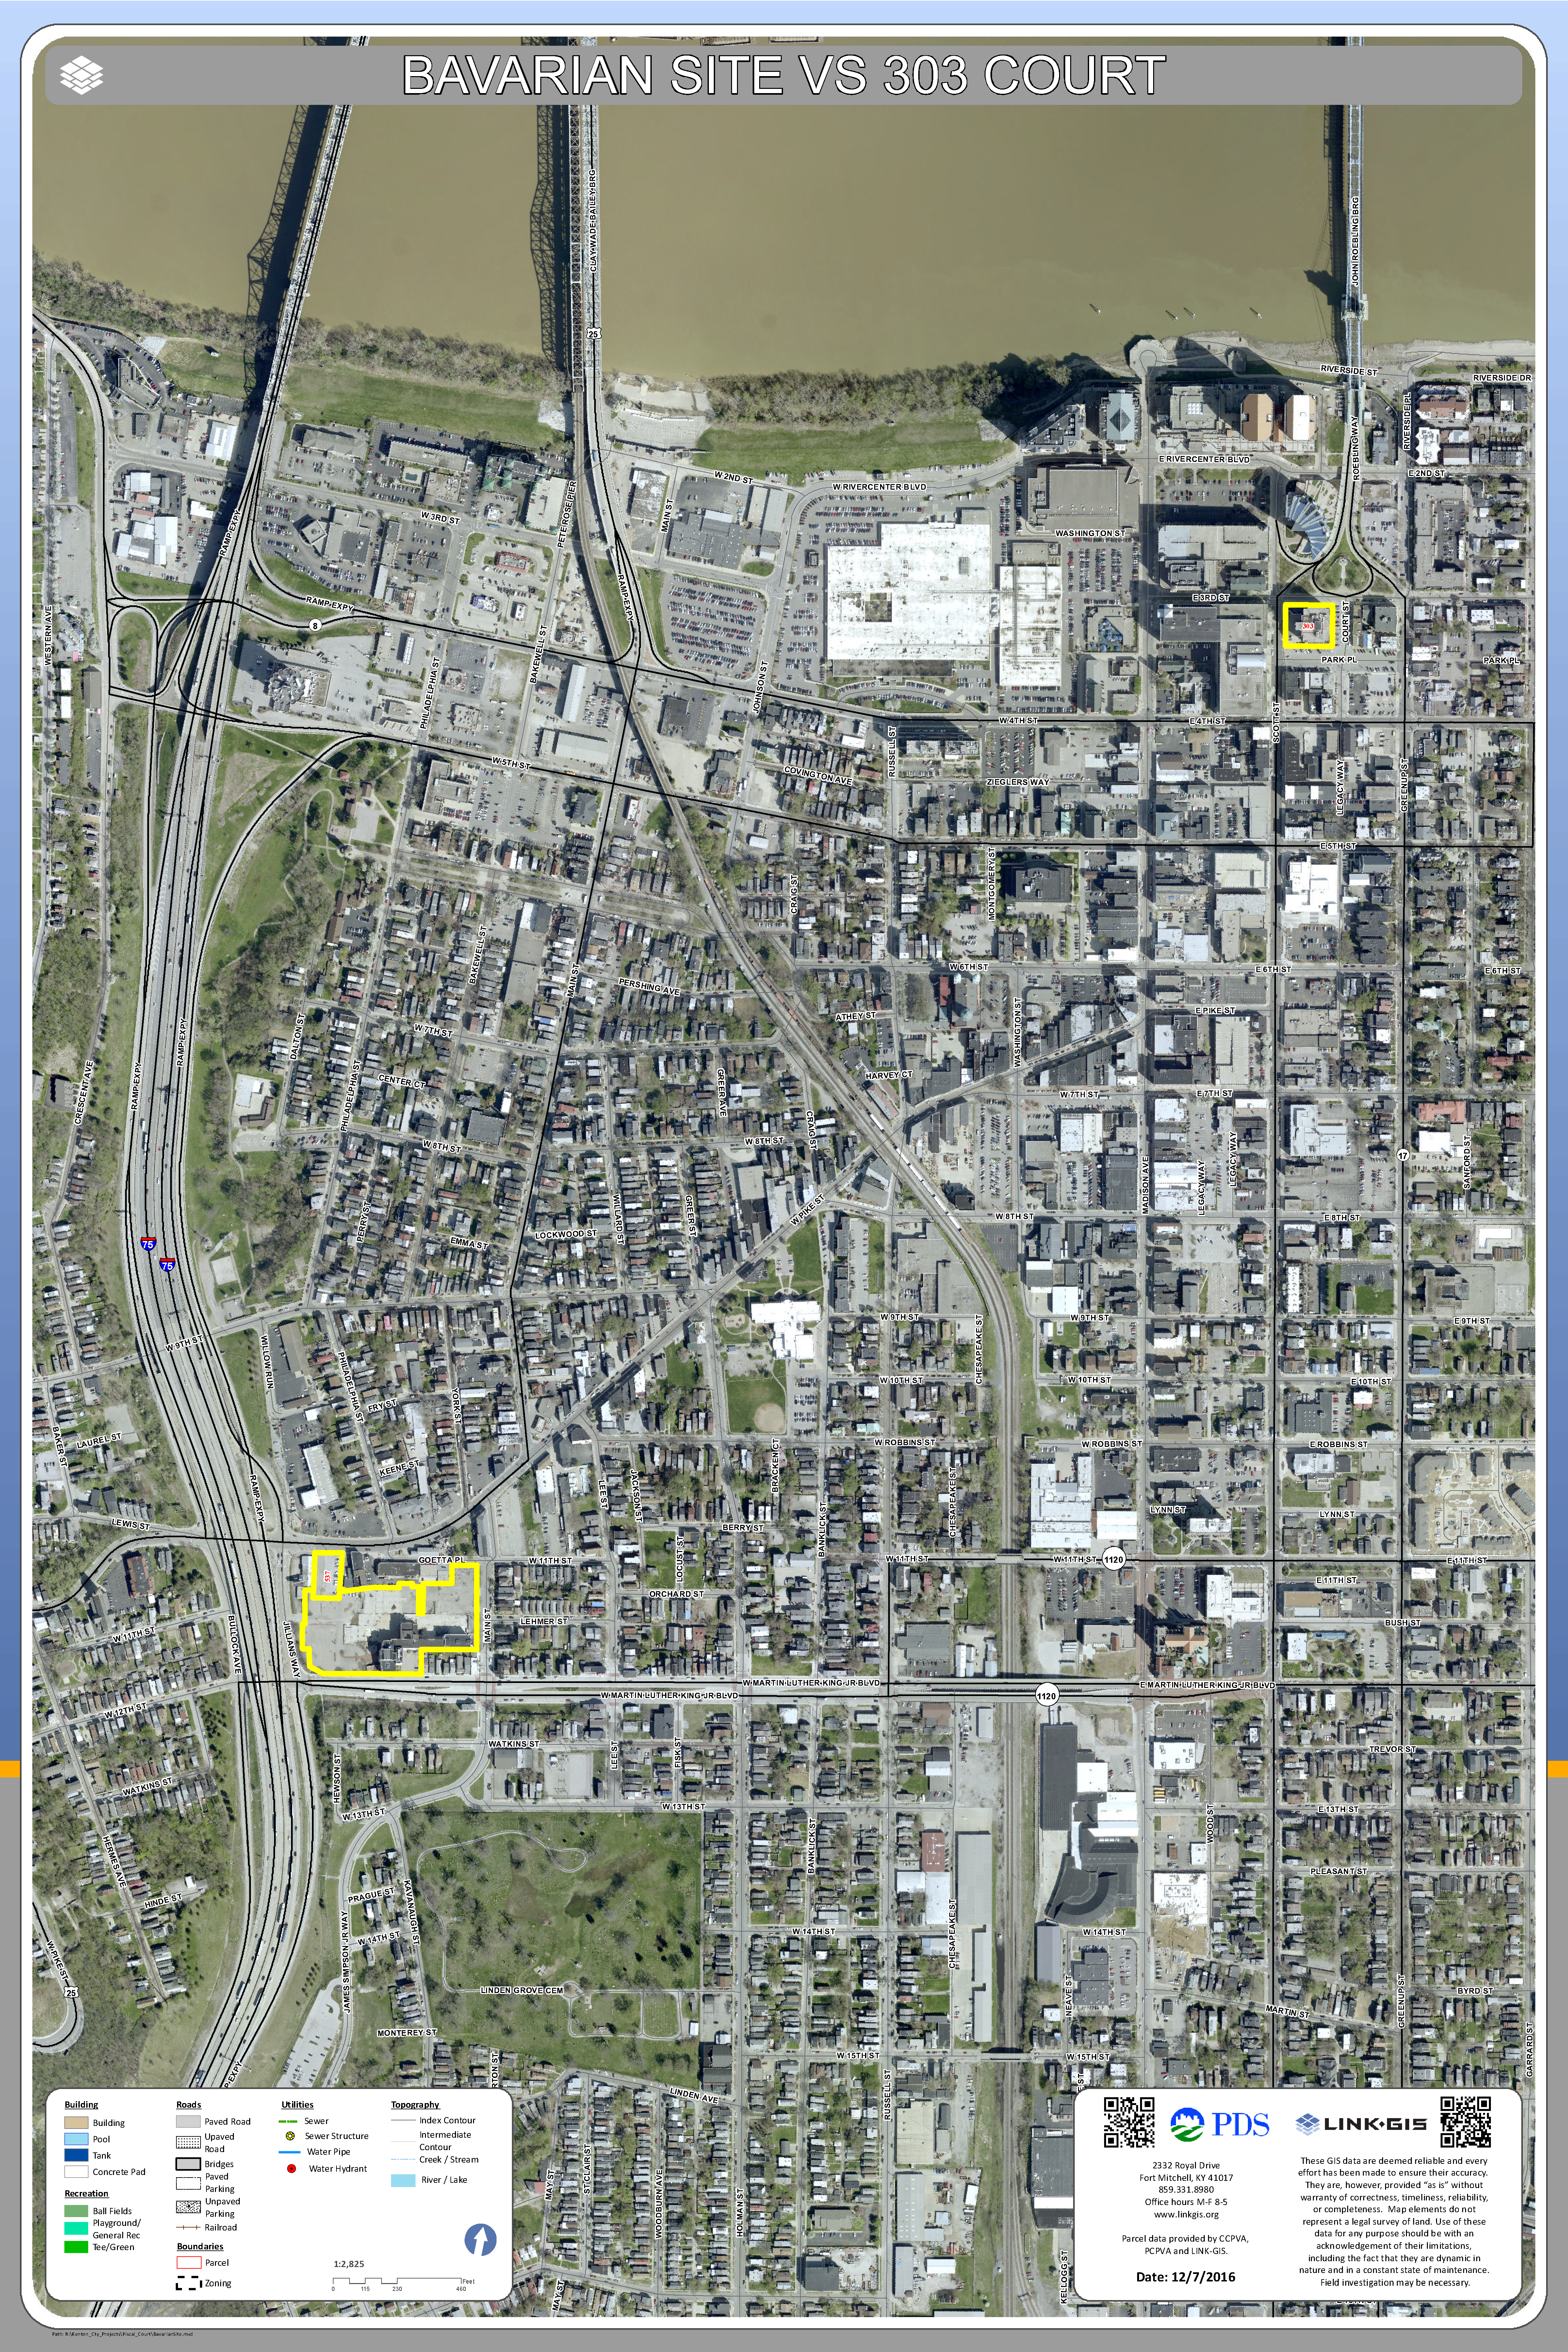 Aerial Map Showing the Location of 303 Court Street in Relation to the Bavarian Site